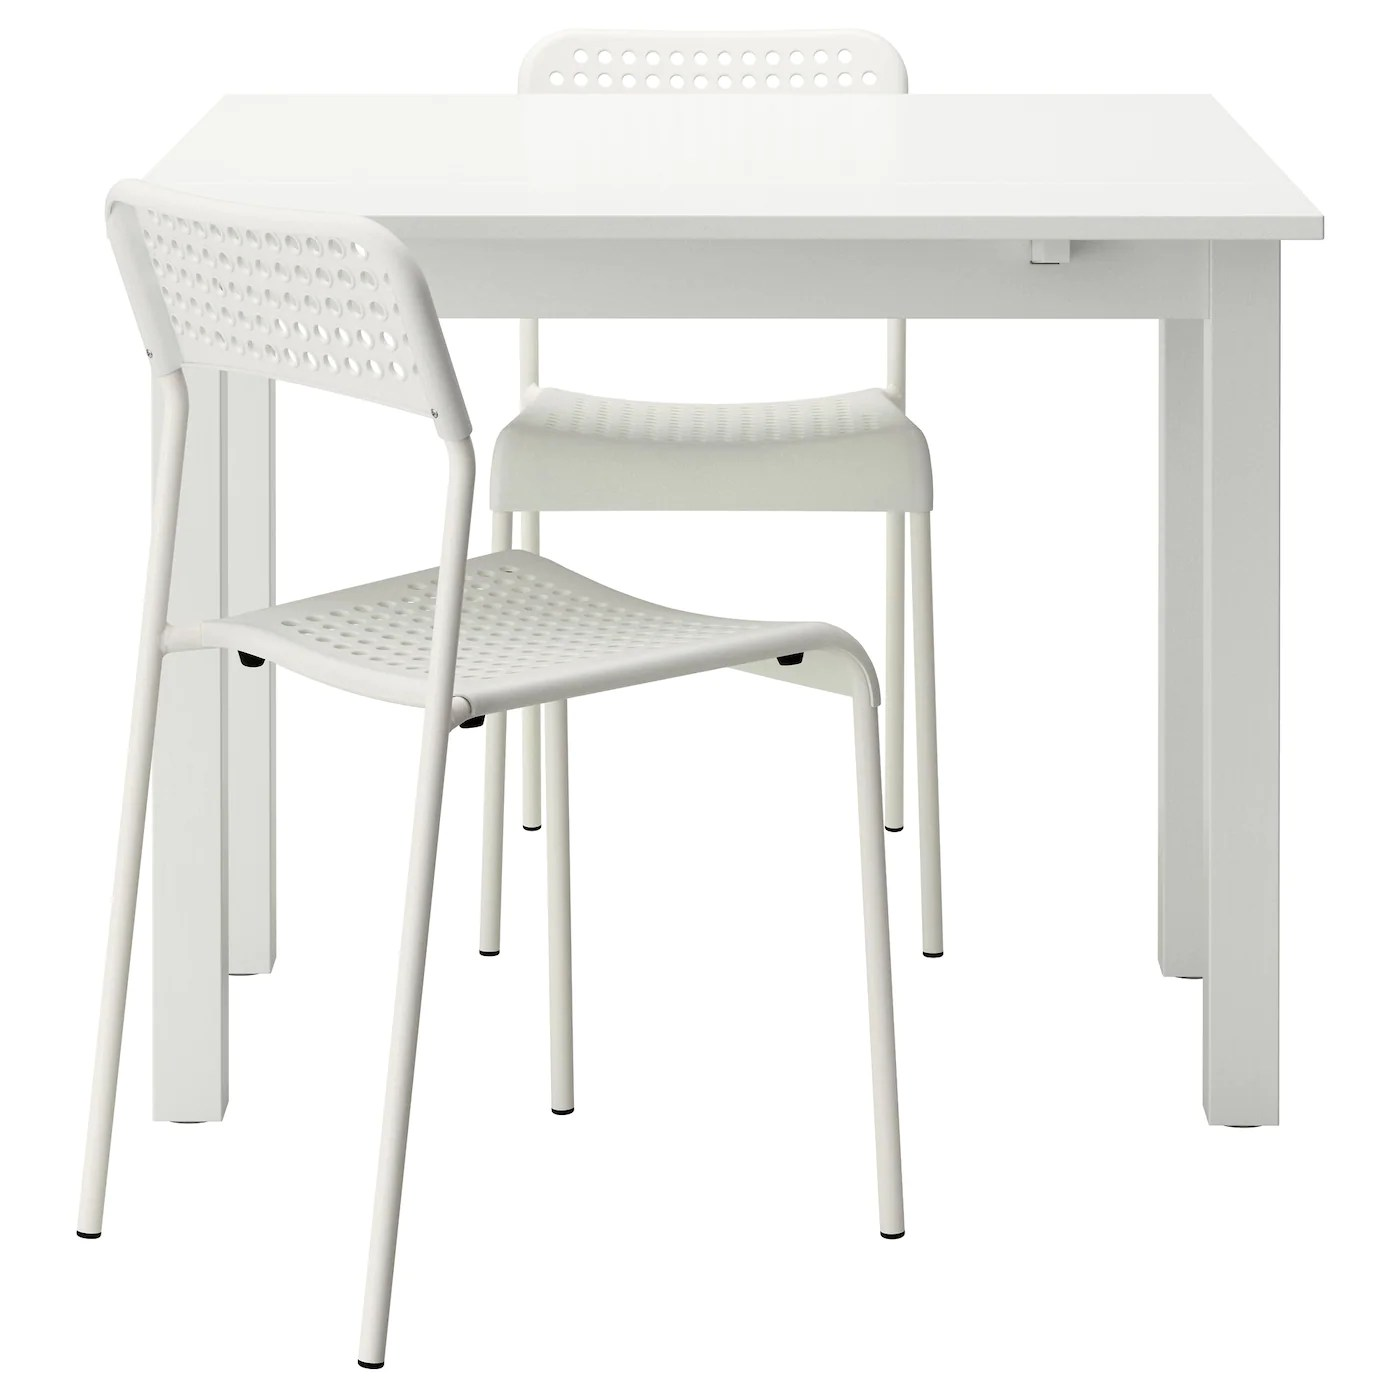 Ikea Tisch 50x50 Bjursta Adde Table And 2 Chairs White 50 Cm Ikea